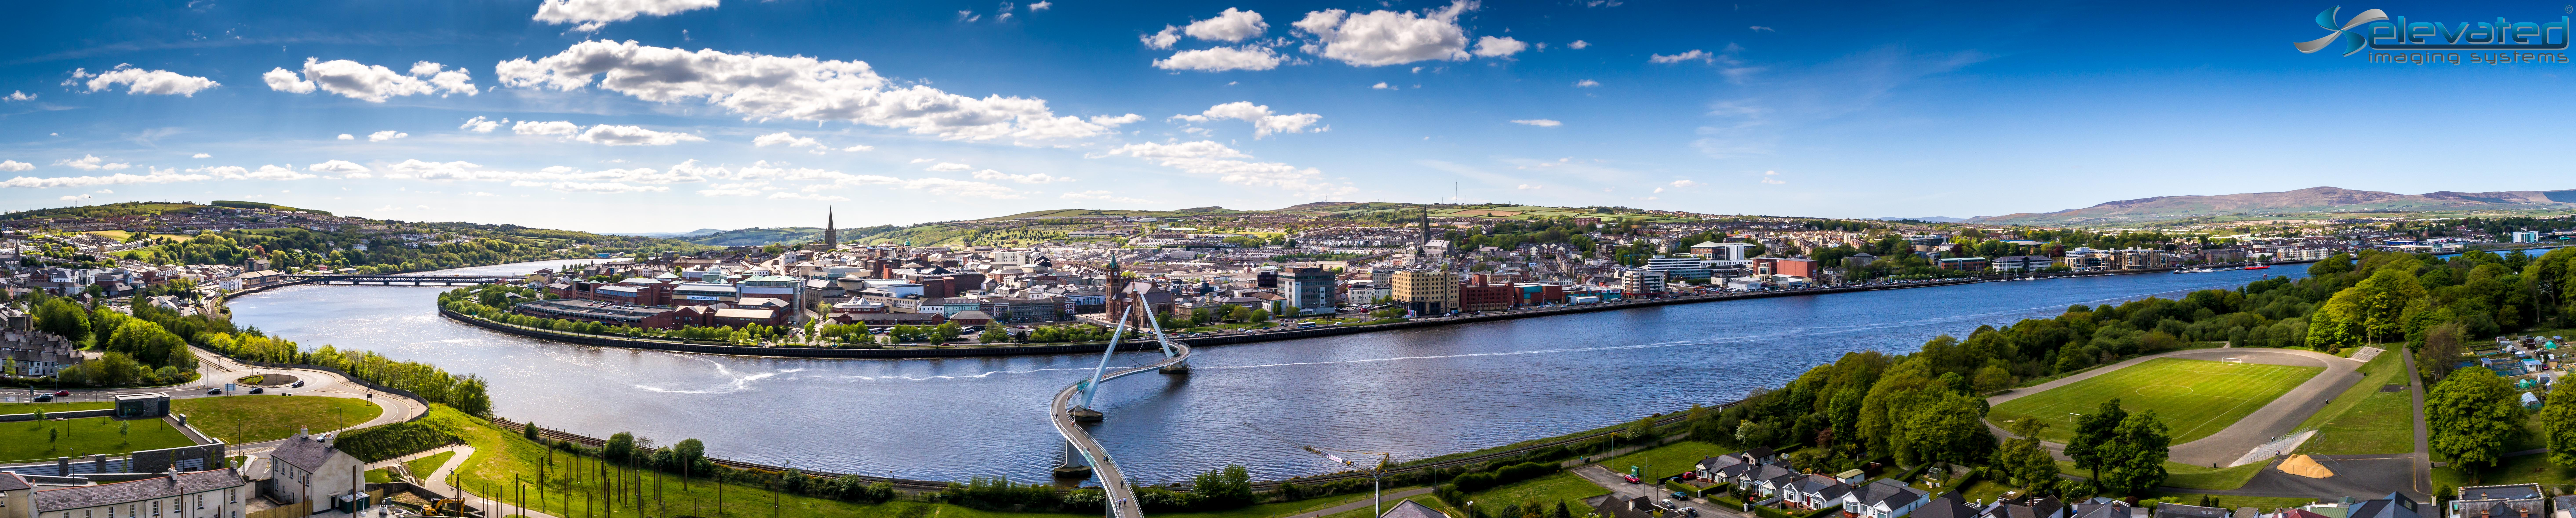 Peace Bridge and River Foyle from Ebrigton Square Derry - Elevated Imaging Systems 2017 Small